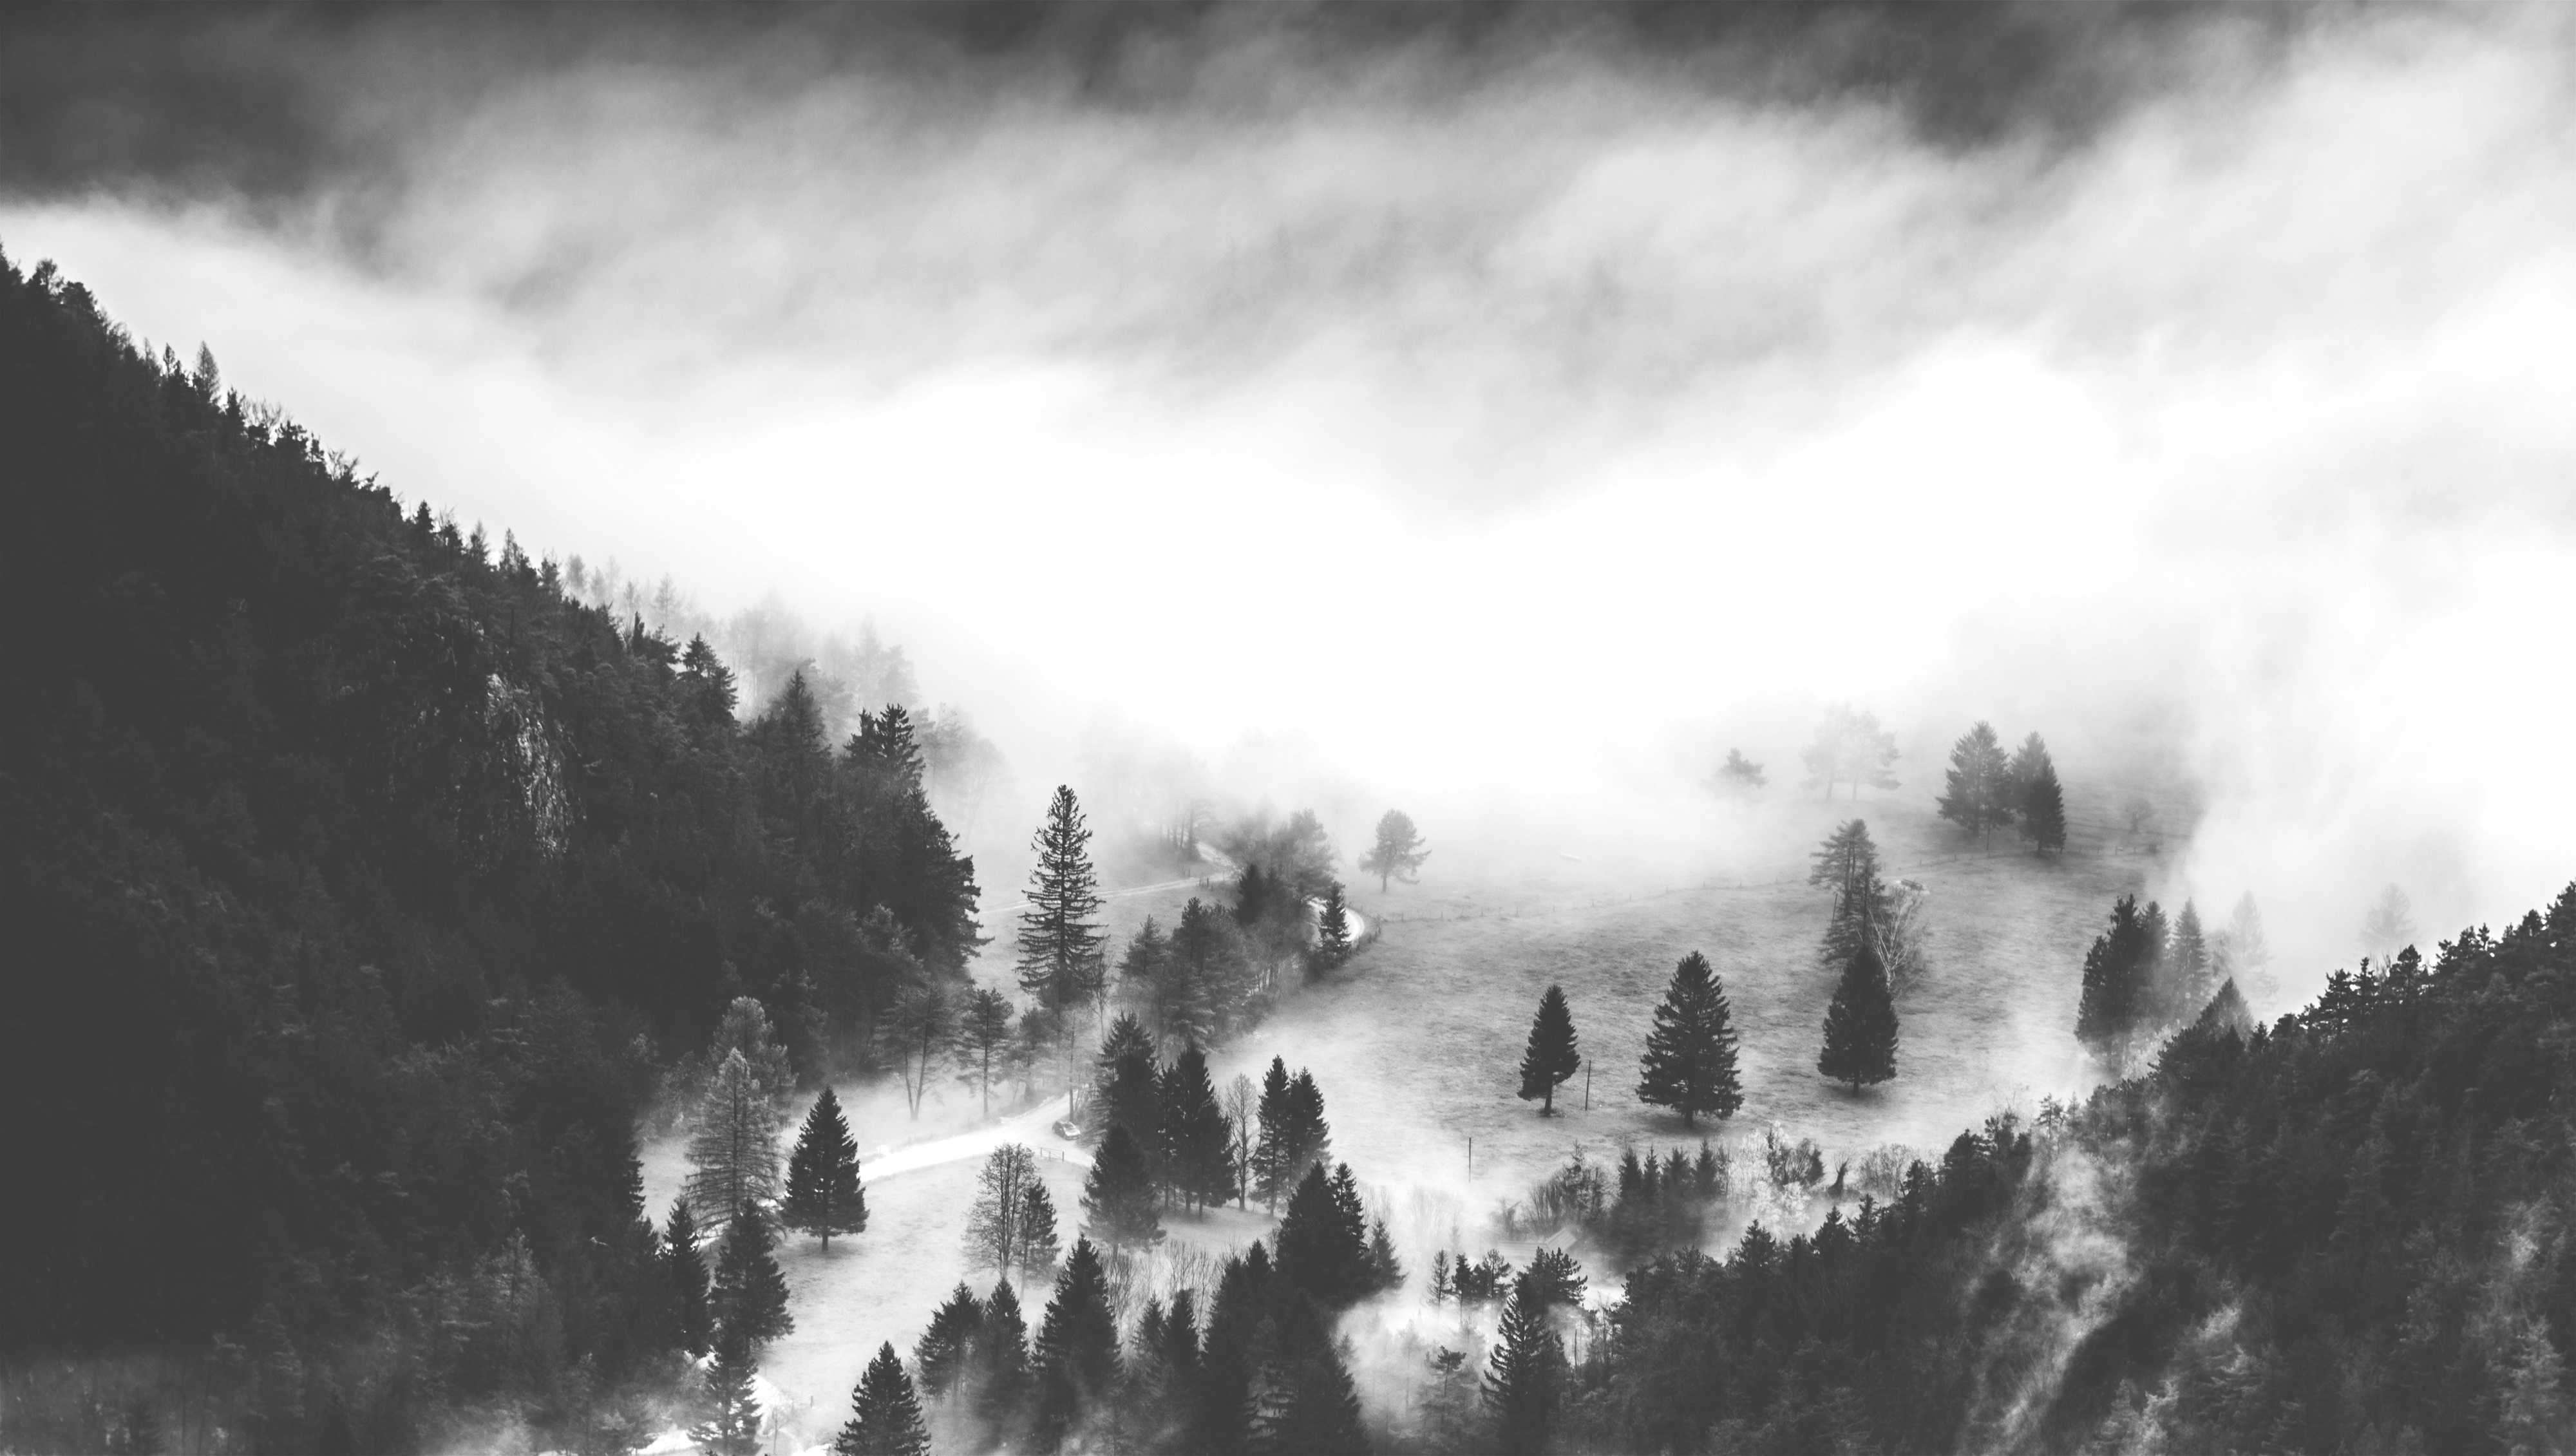 Fog in the mountains, forest, mountains, trees, pines, fog, smoke